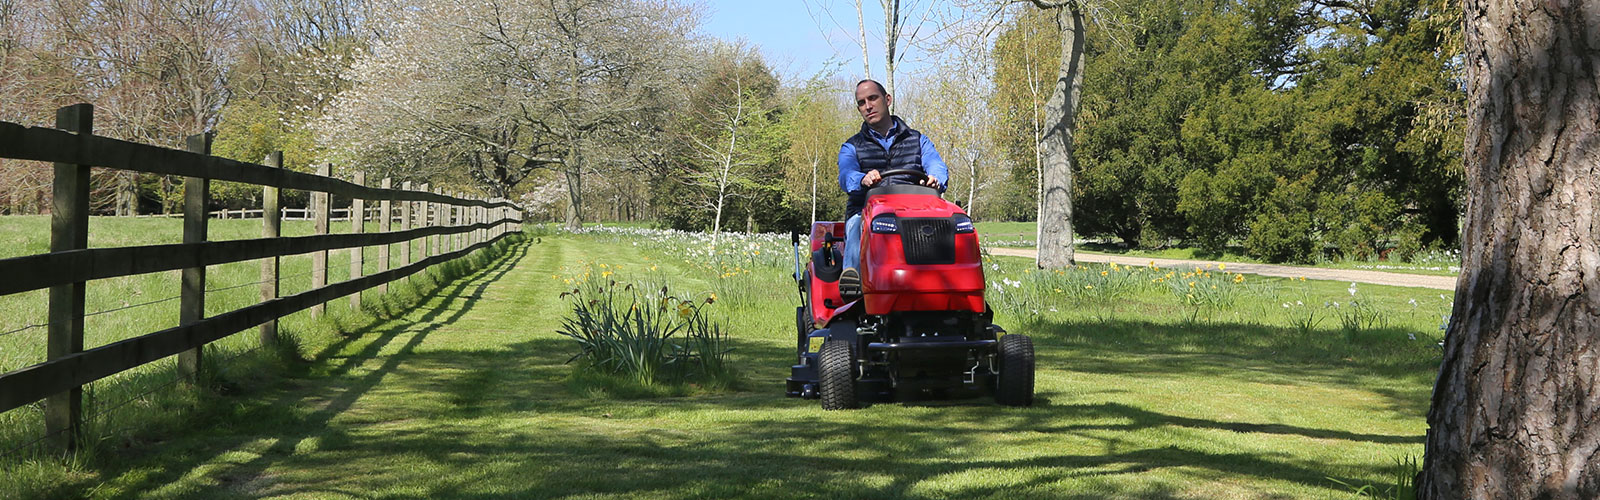 Countax C Series lawn garden tractor ride-on mower cutting and collecting grass by fence